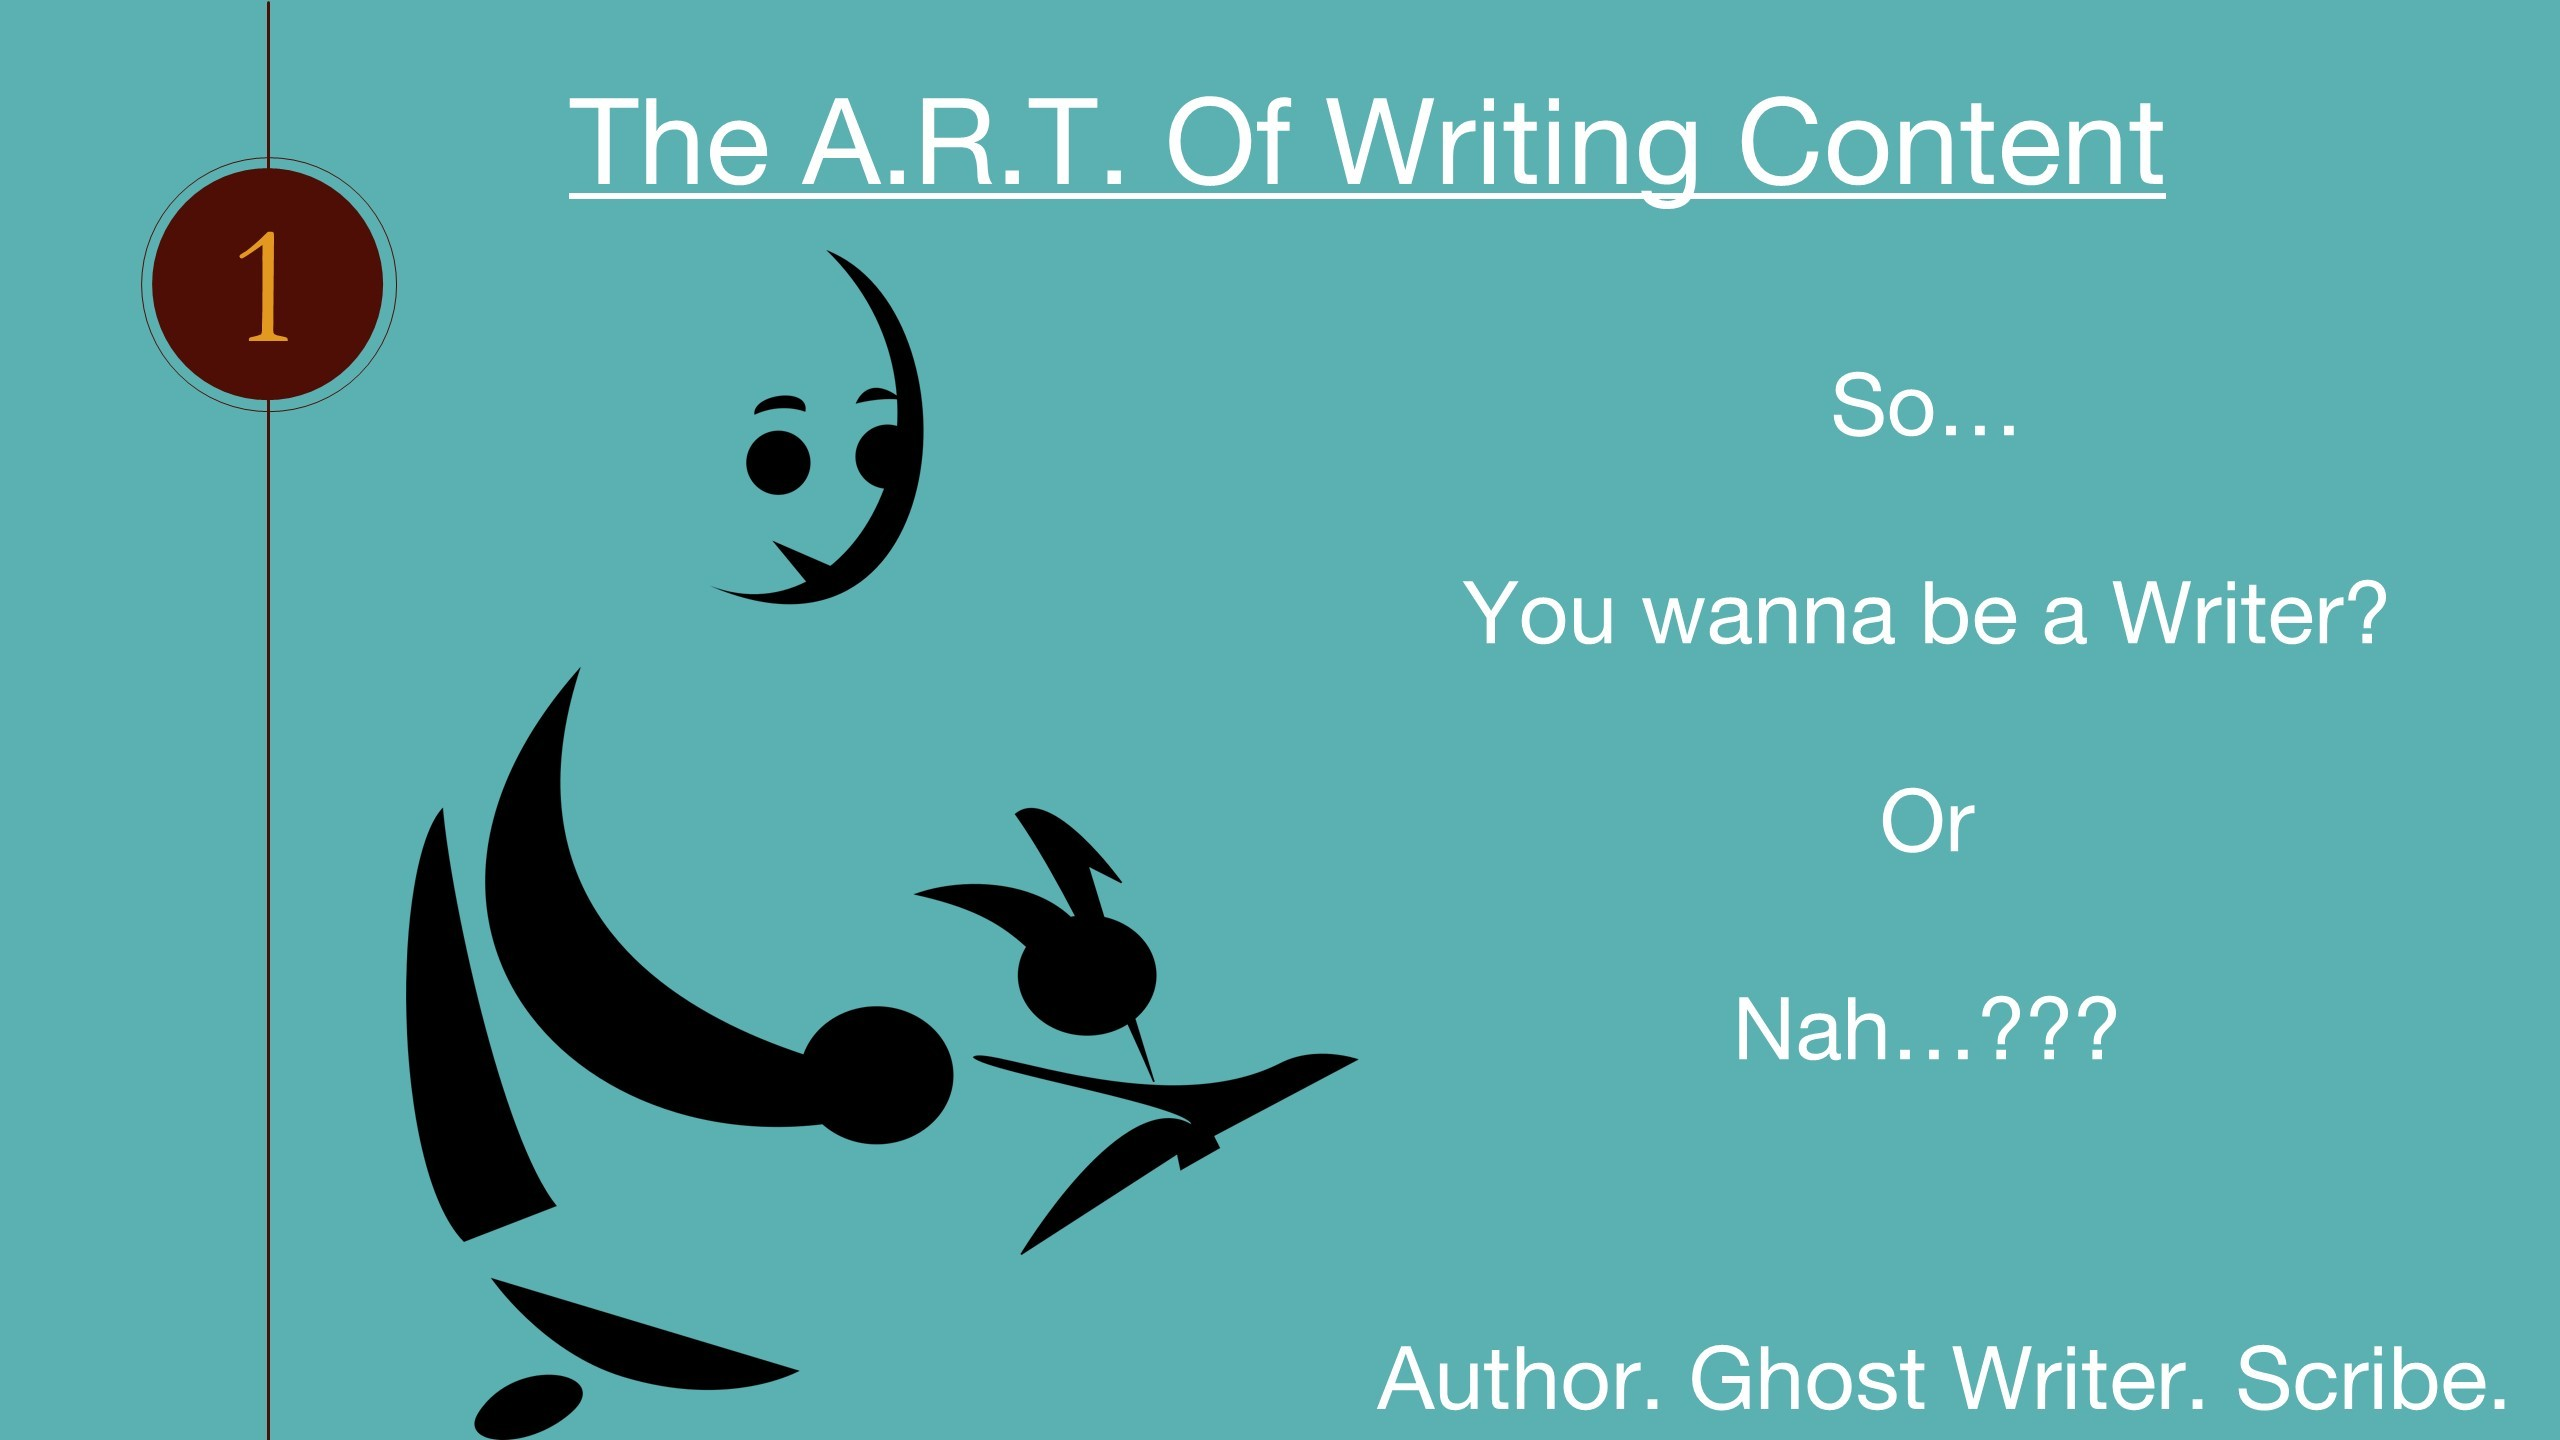 The A.R.T. of Writing Catchy Content